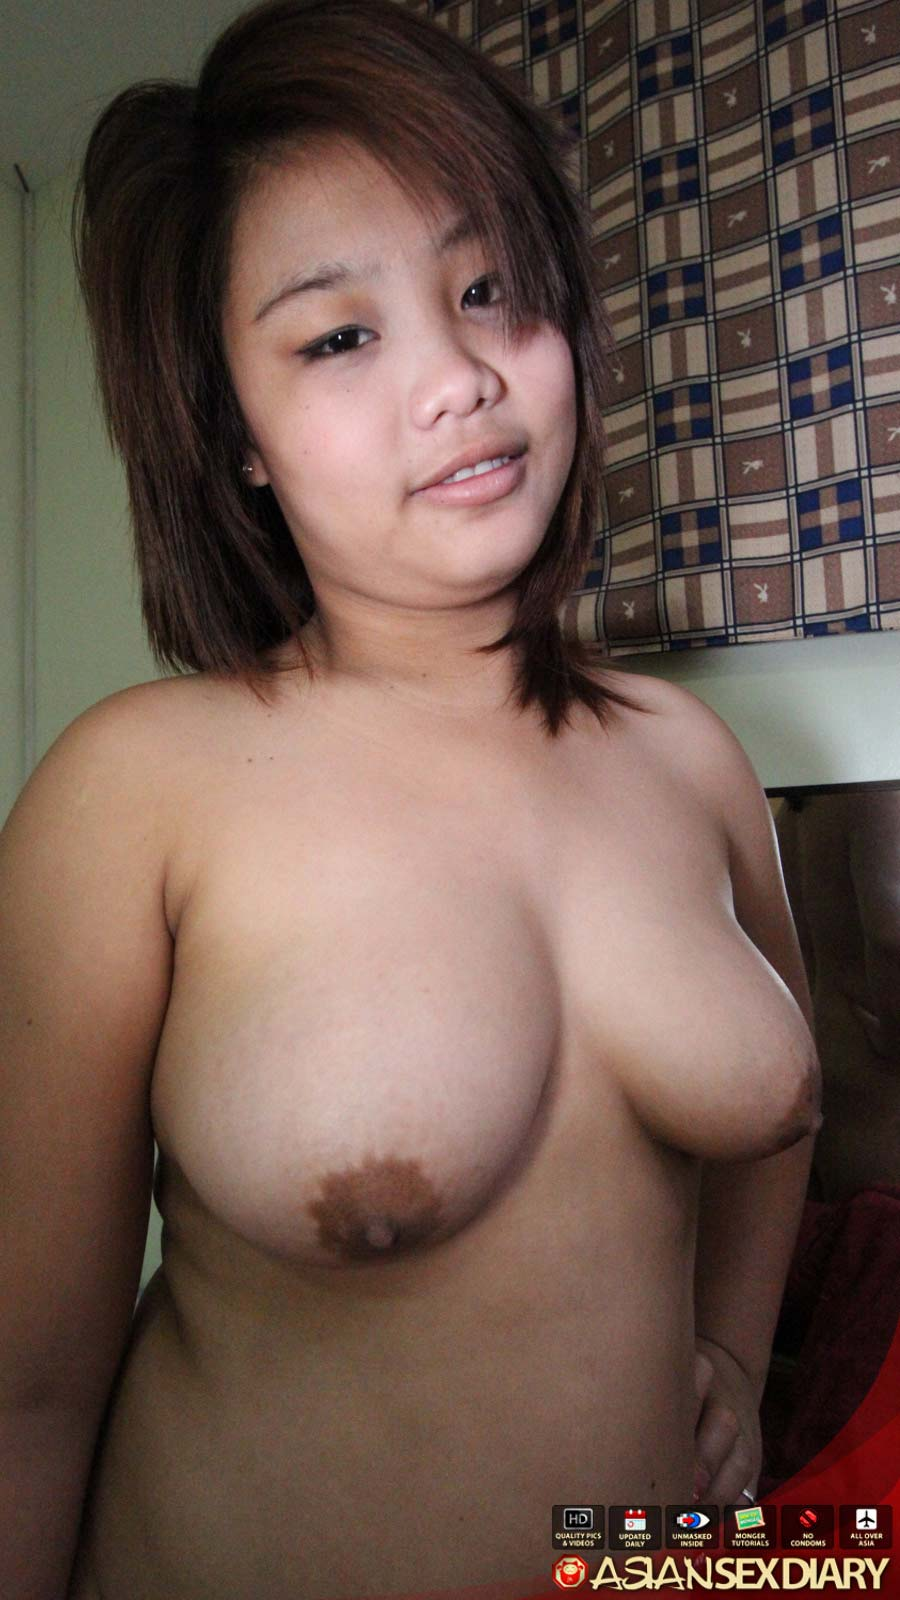 Exact answer Asian sex diary filipina threesome